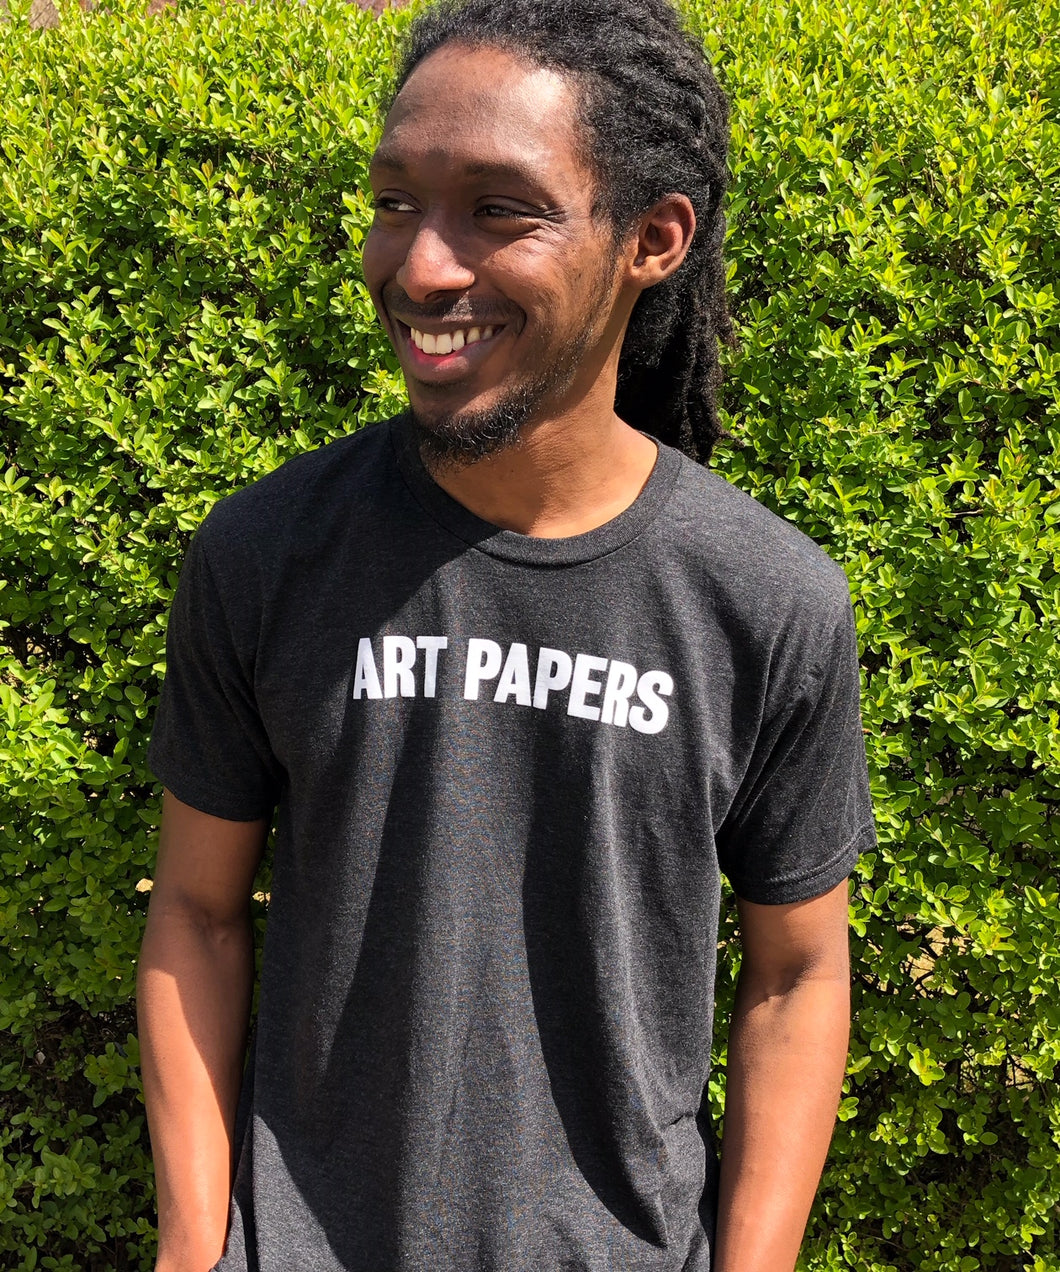 ART PAPERS T-Shirt - GRAY